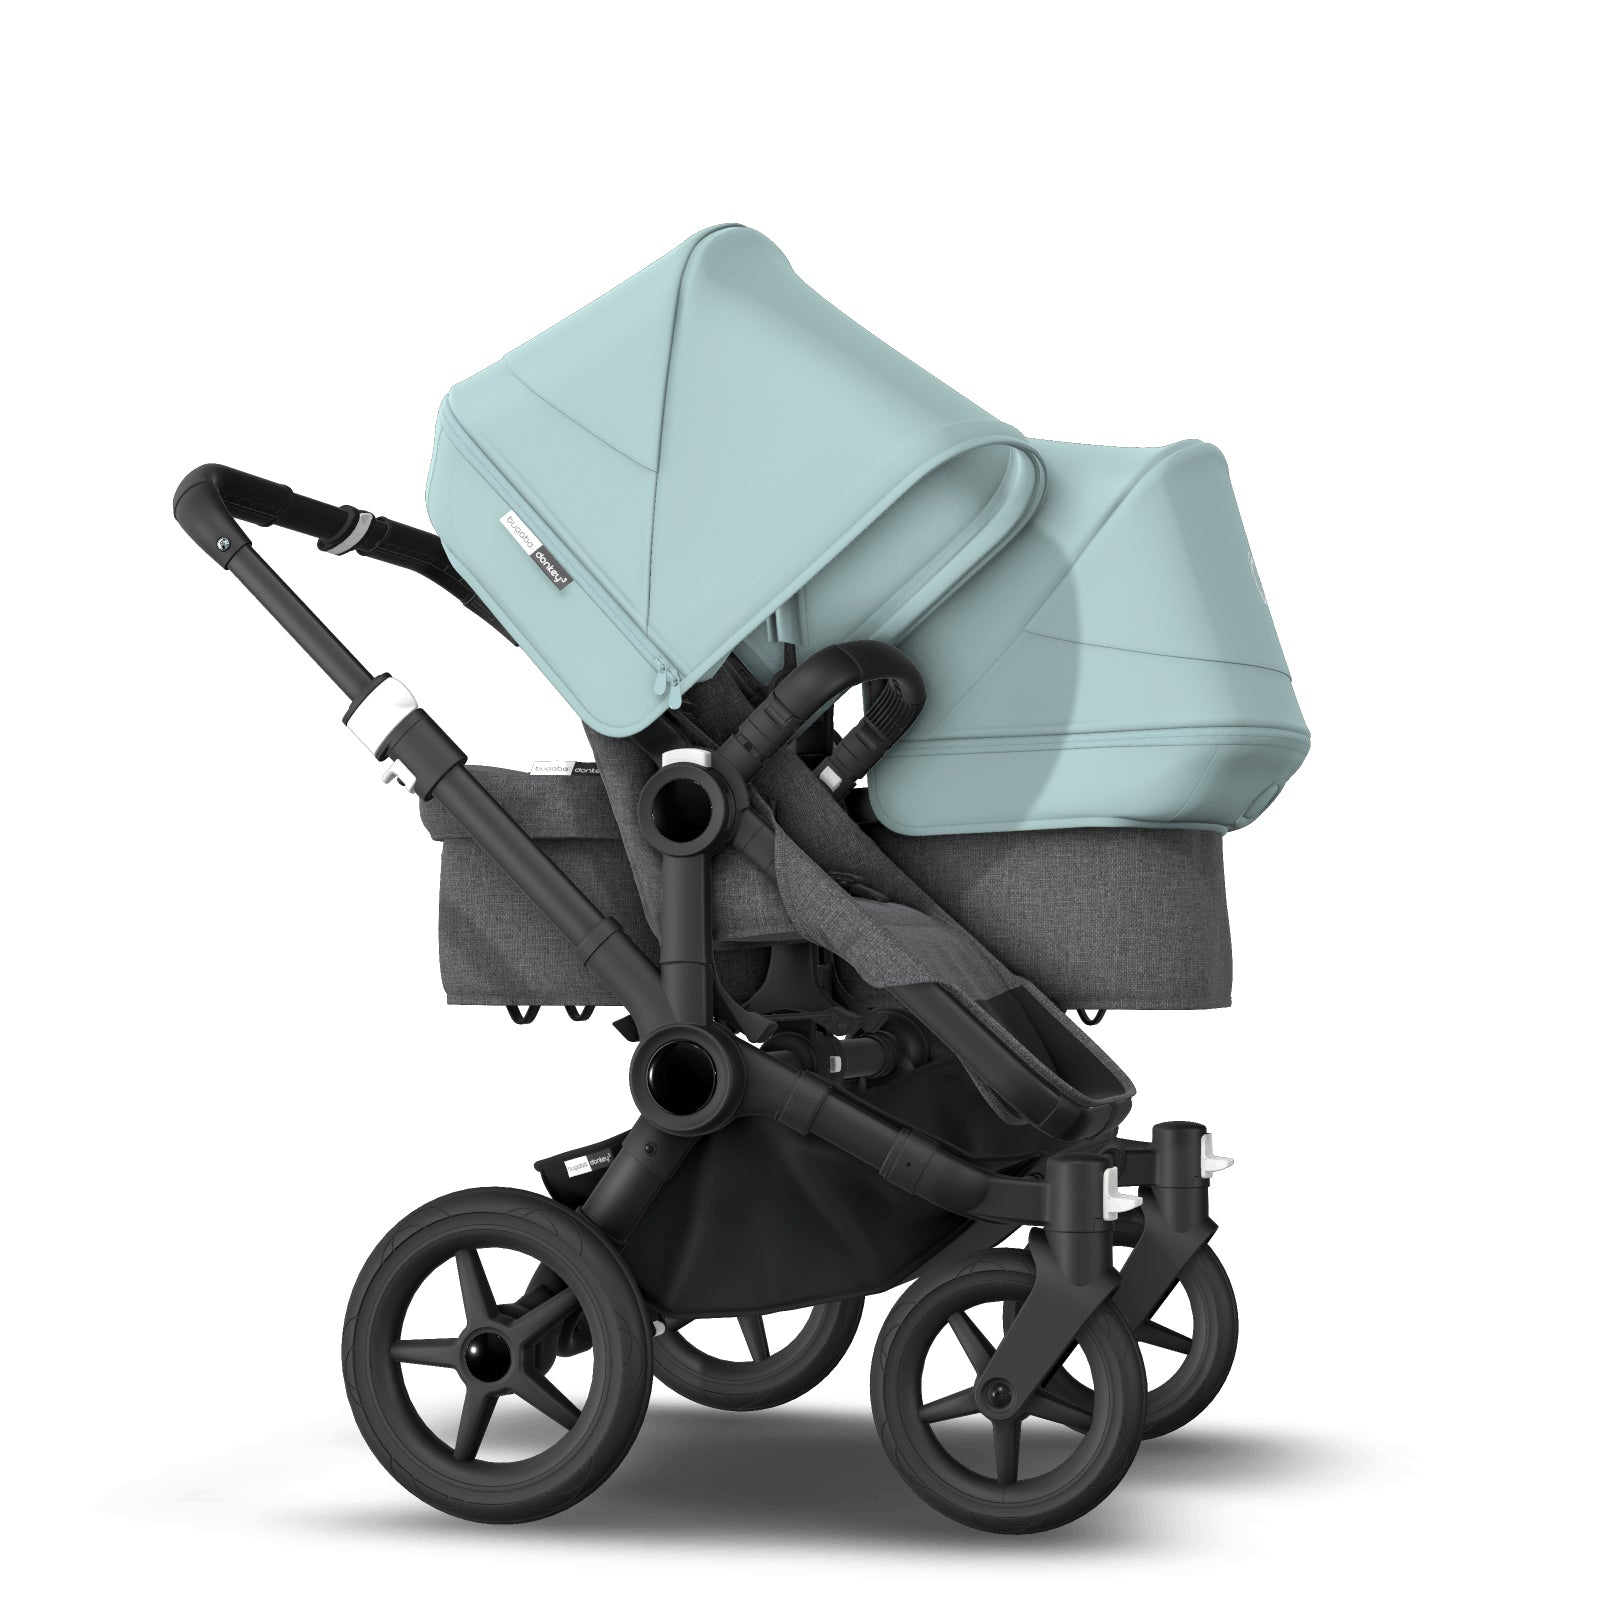 Bugaboo Donkey 3 Duo Seat and Carrycot Pushchair - Vapor Blue